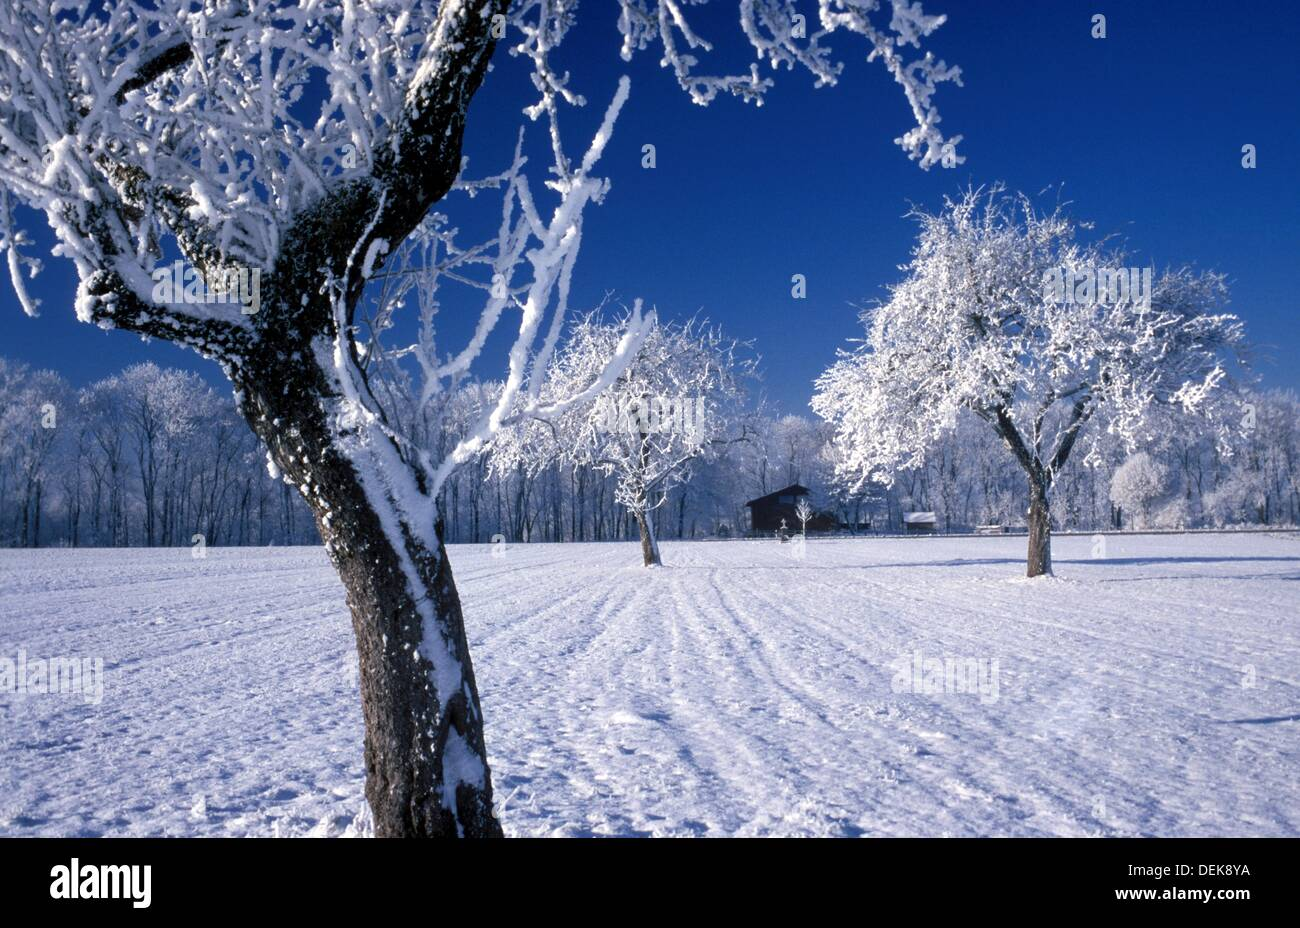 Snowed in apple trees on sunny winter morning - Stock Image